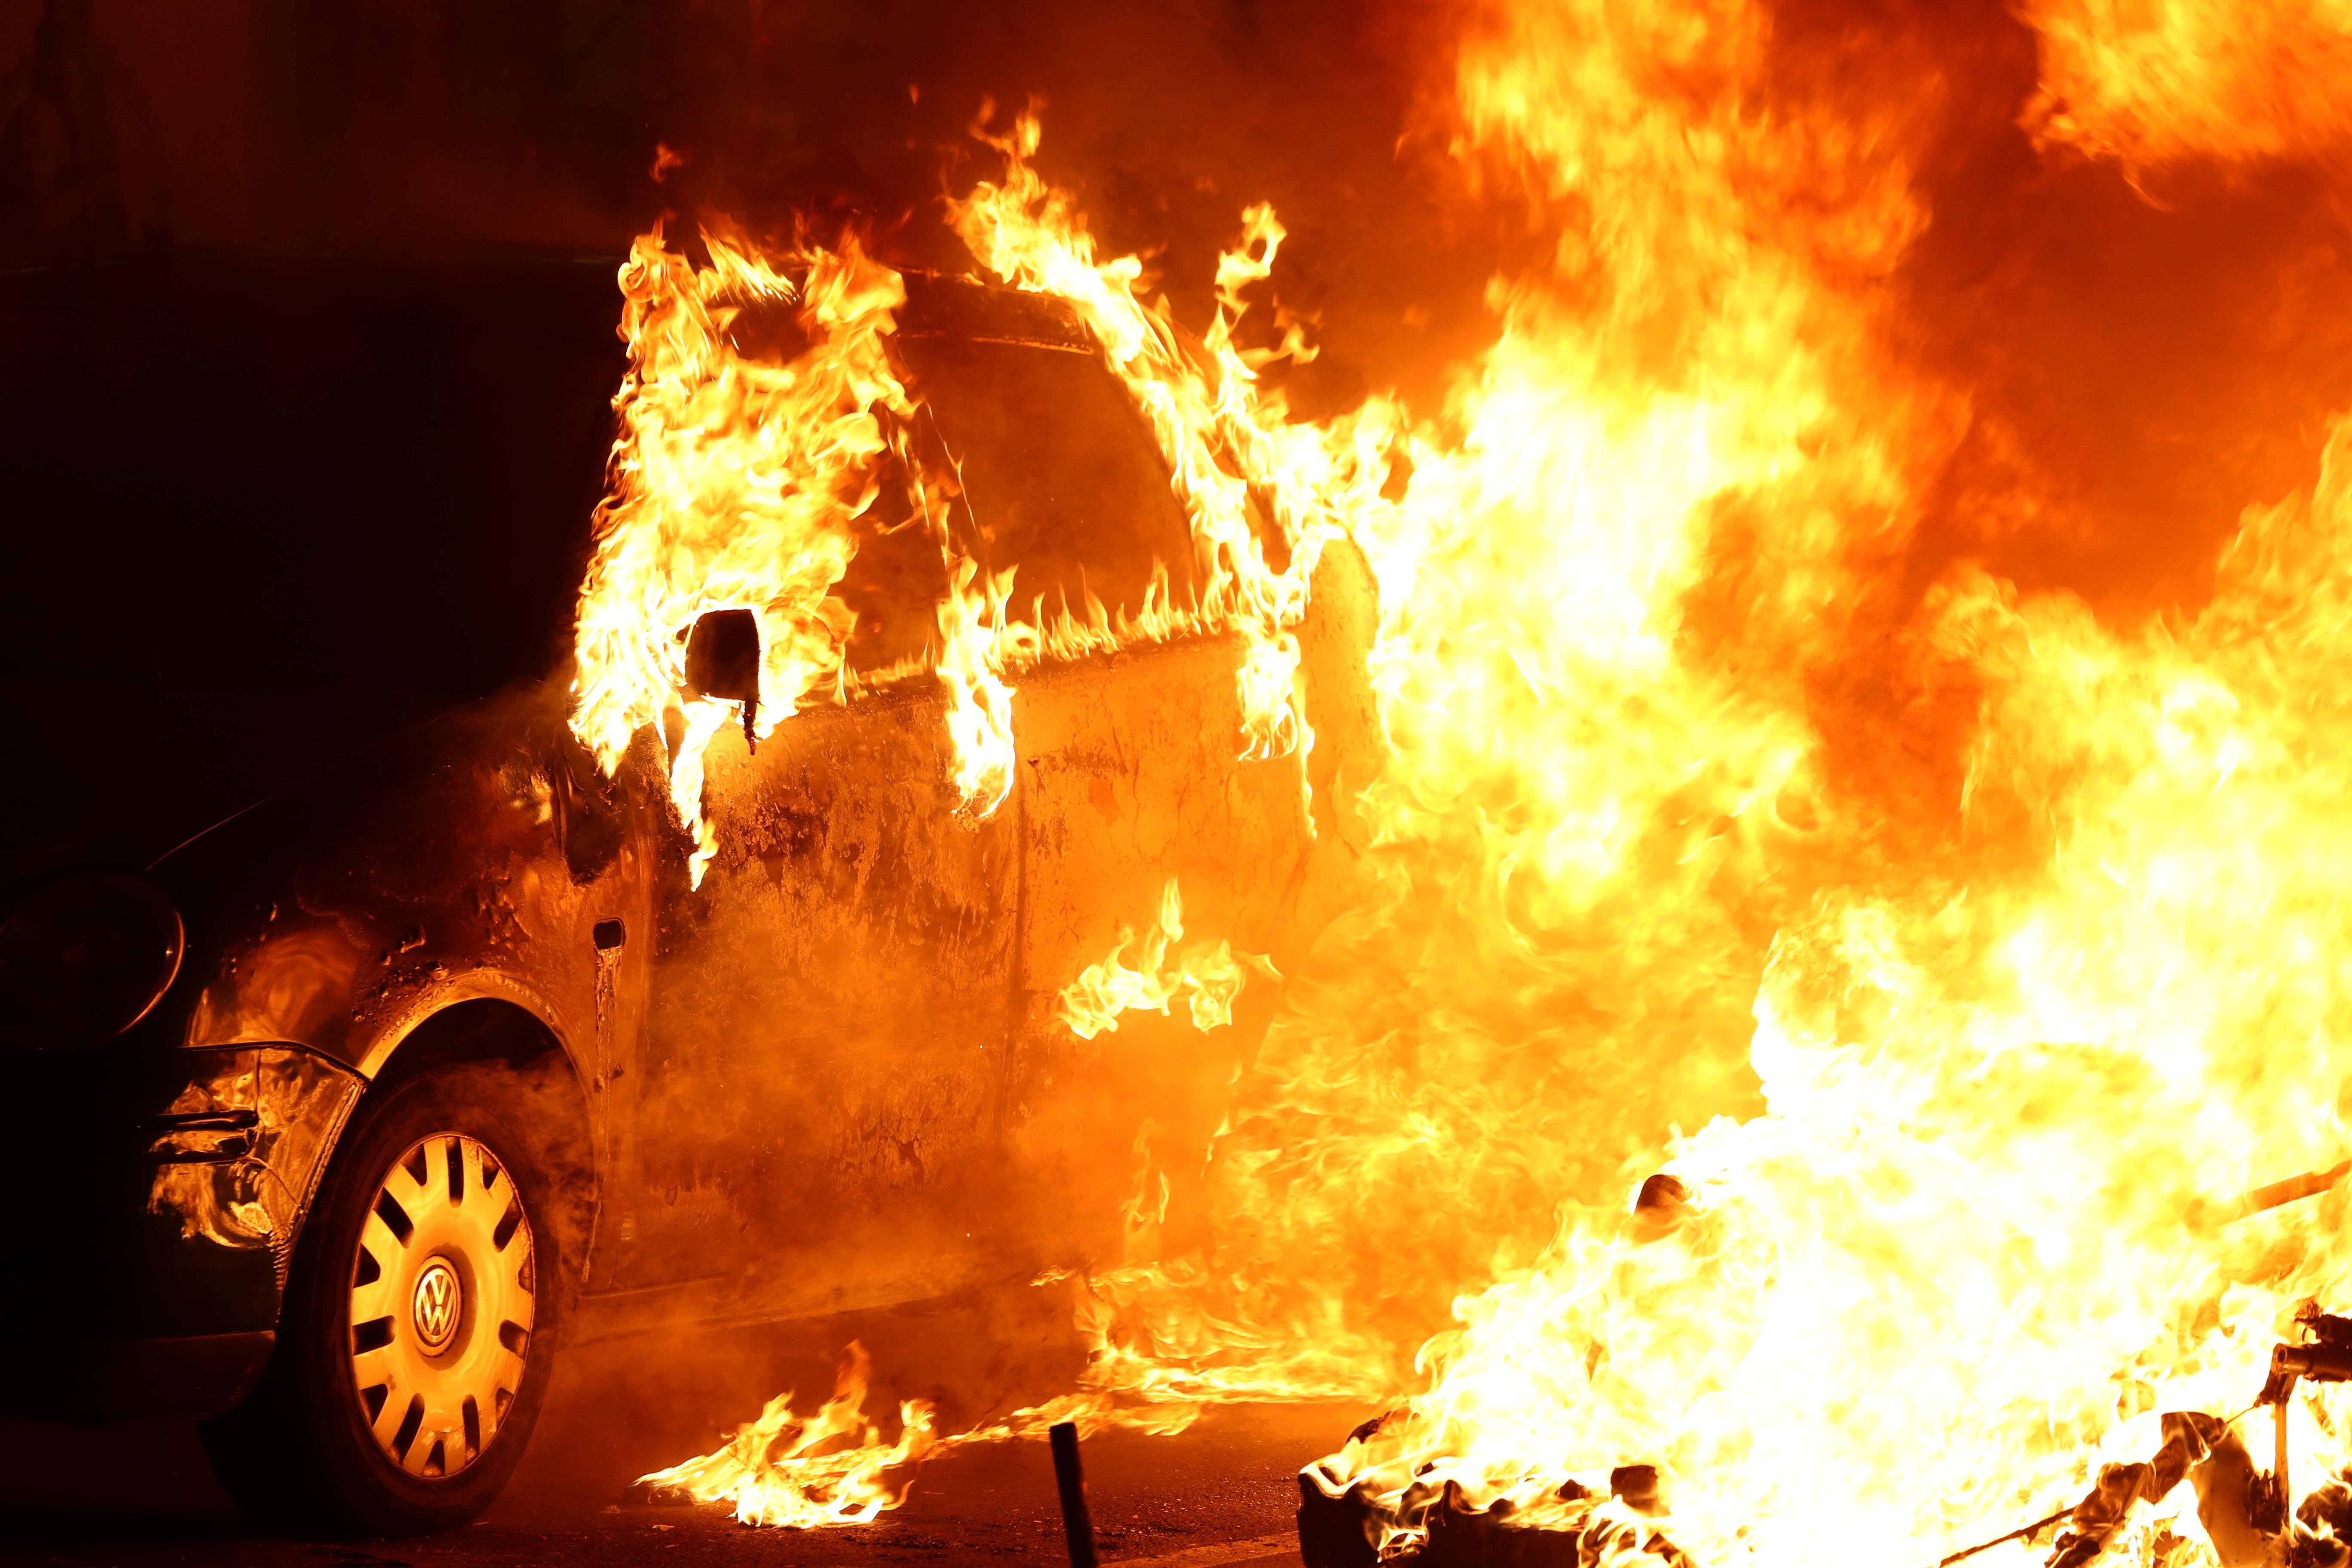 Cars burn in Barcelona as protesters ignore calls for calm